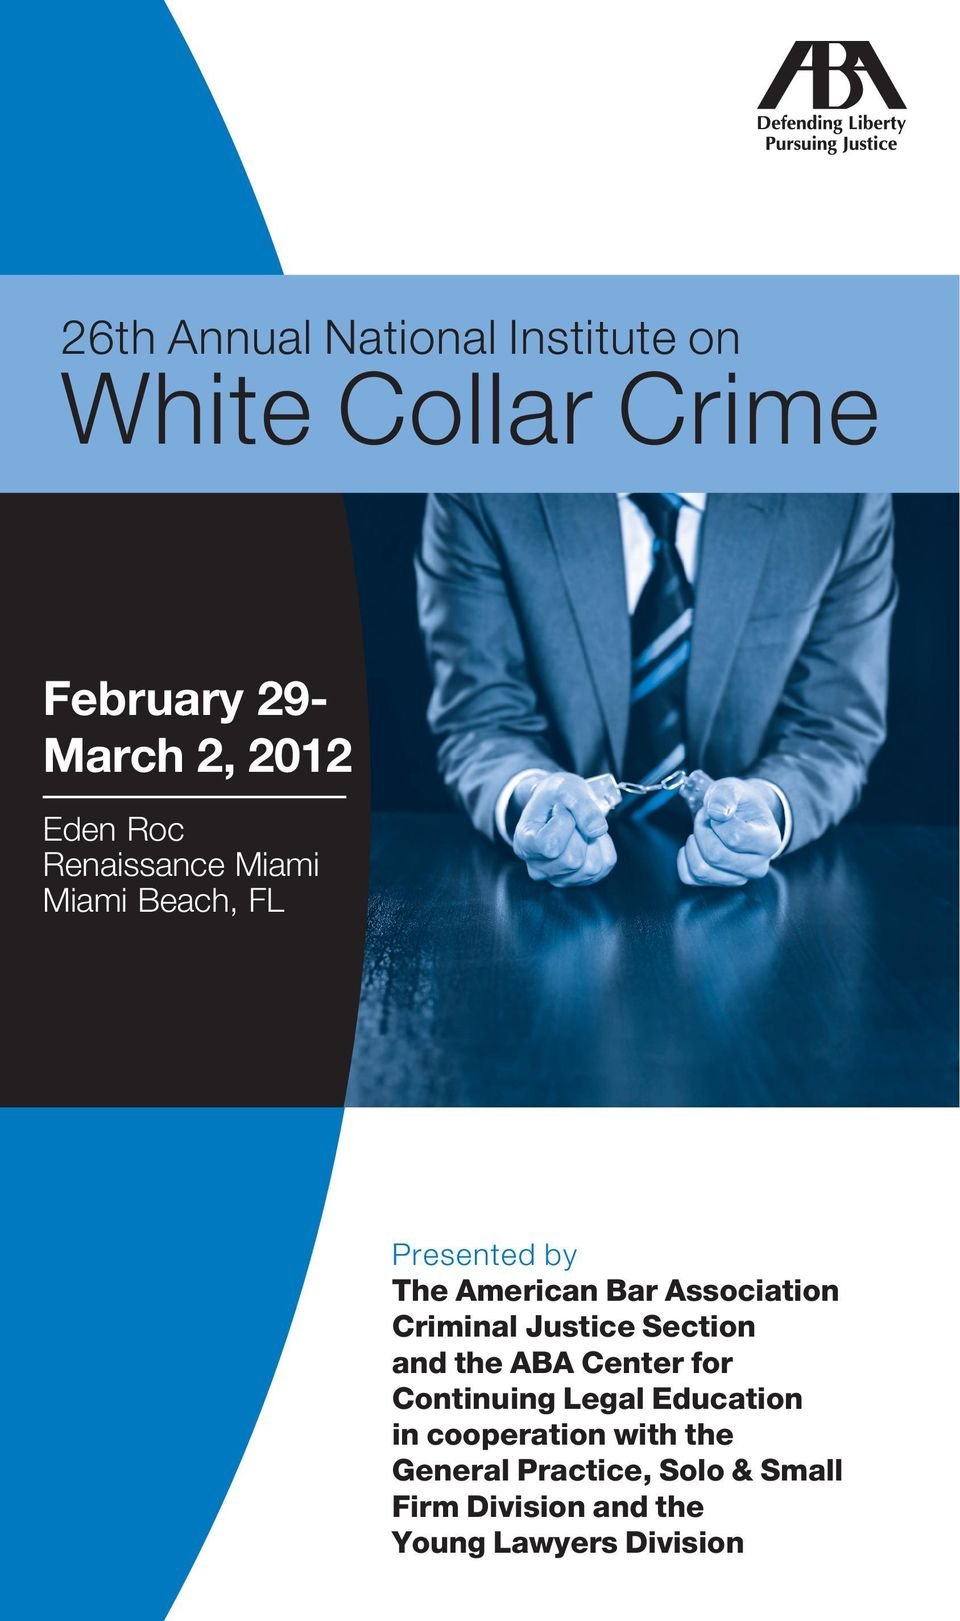 Criminal Justice Section and the ABA Center for Continuing Legal Education in